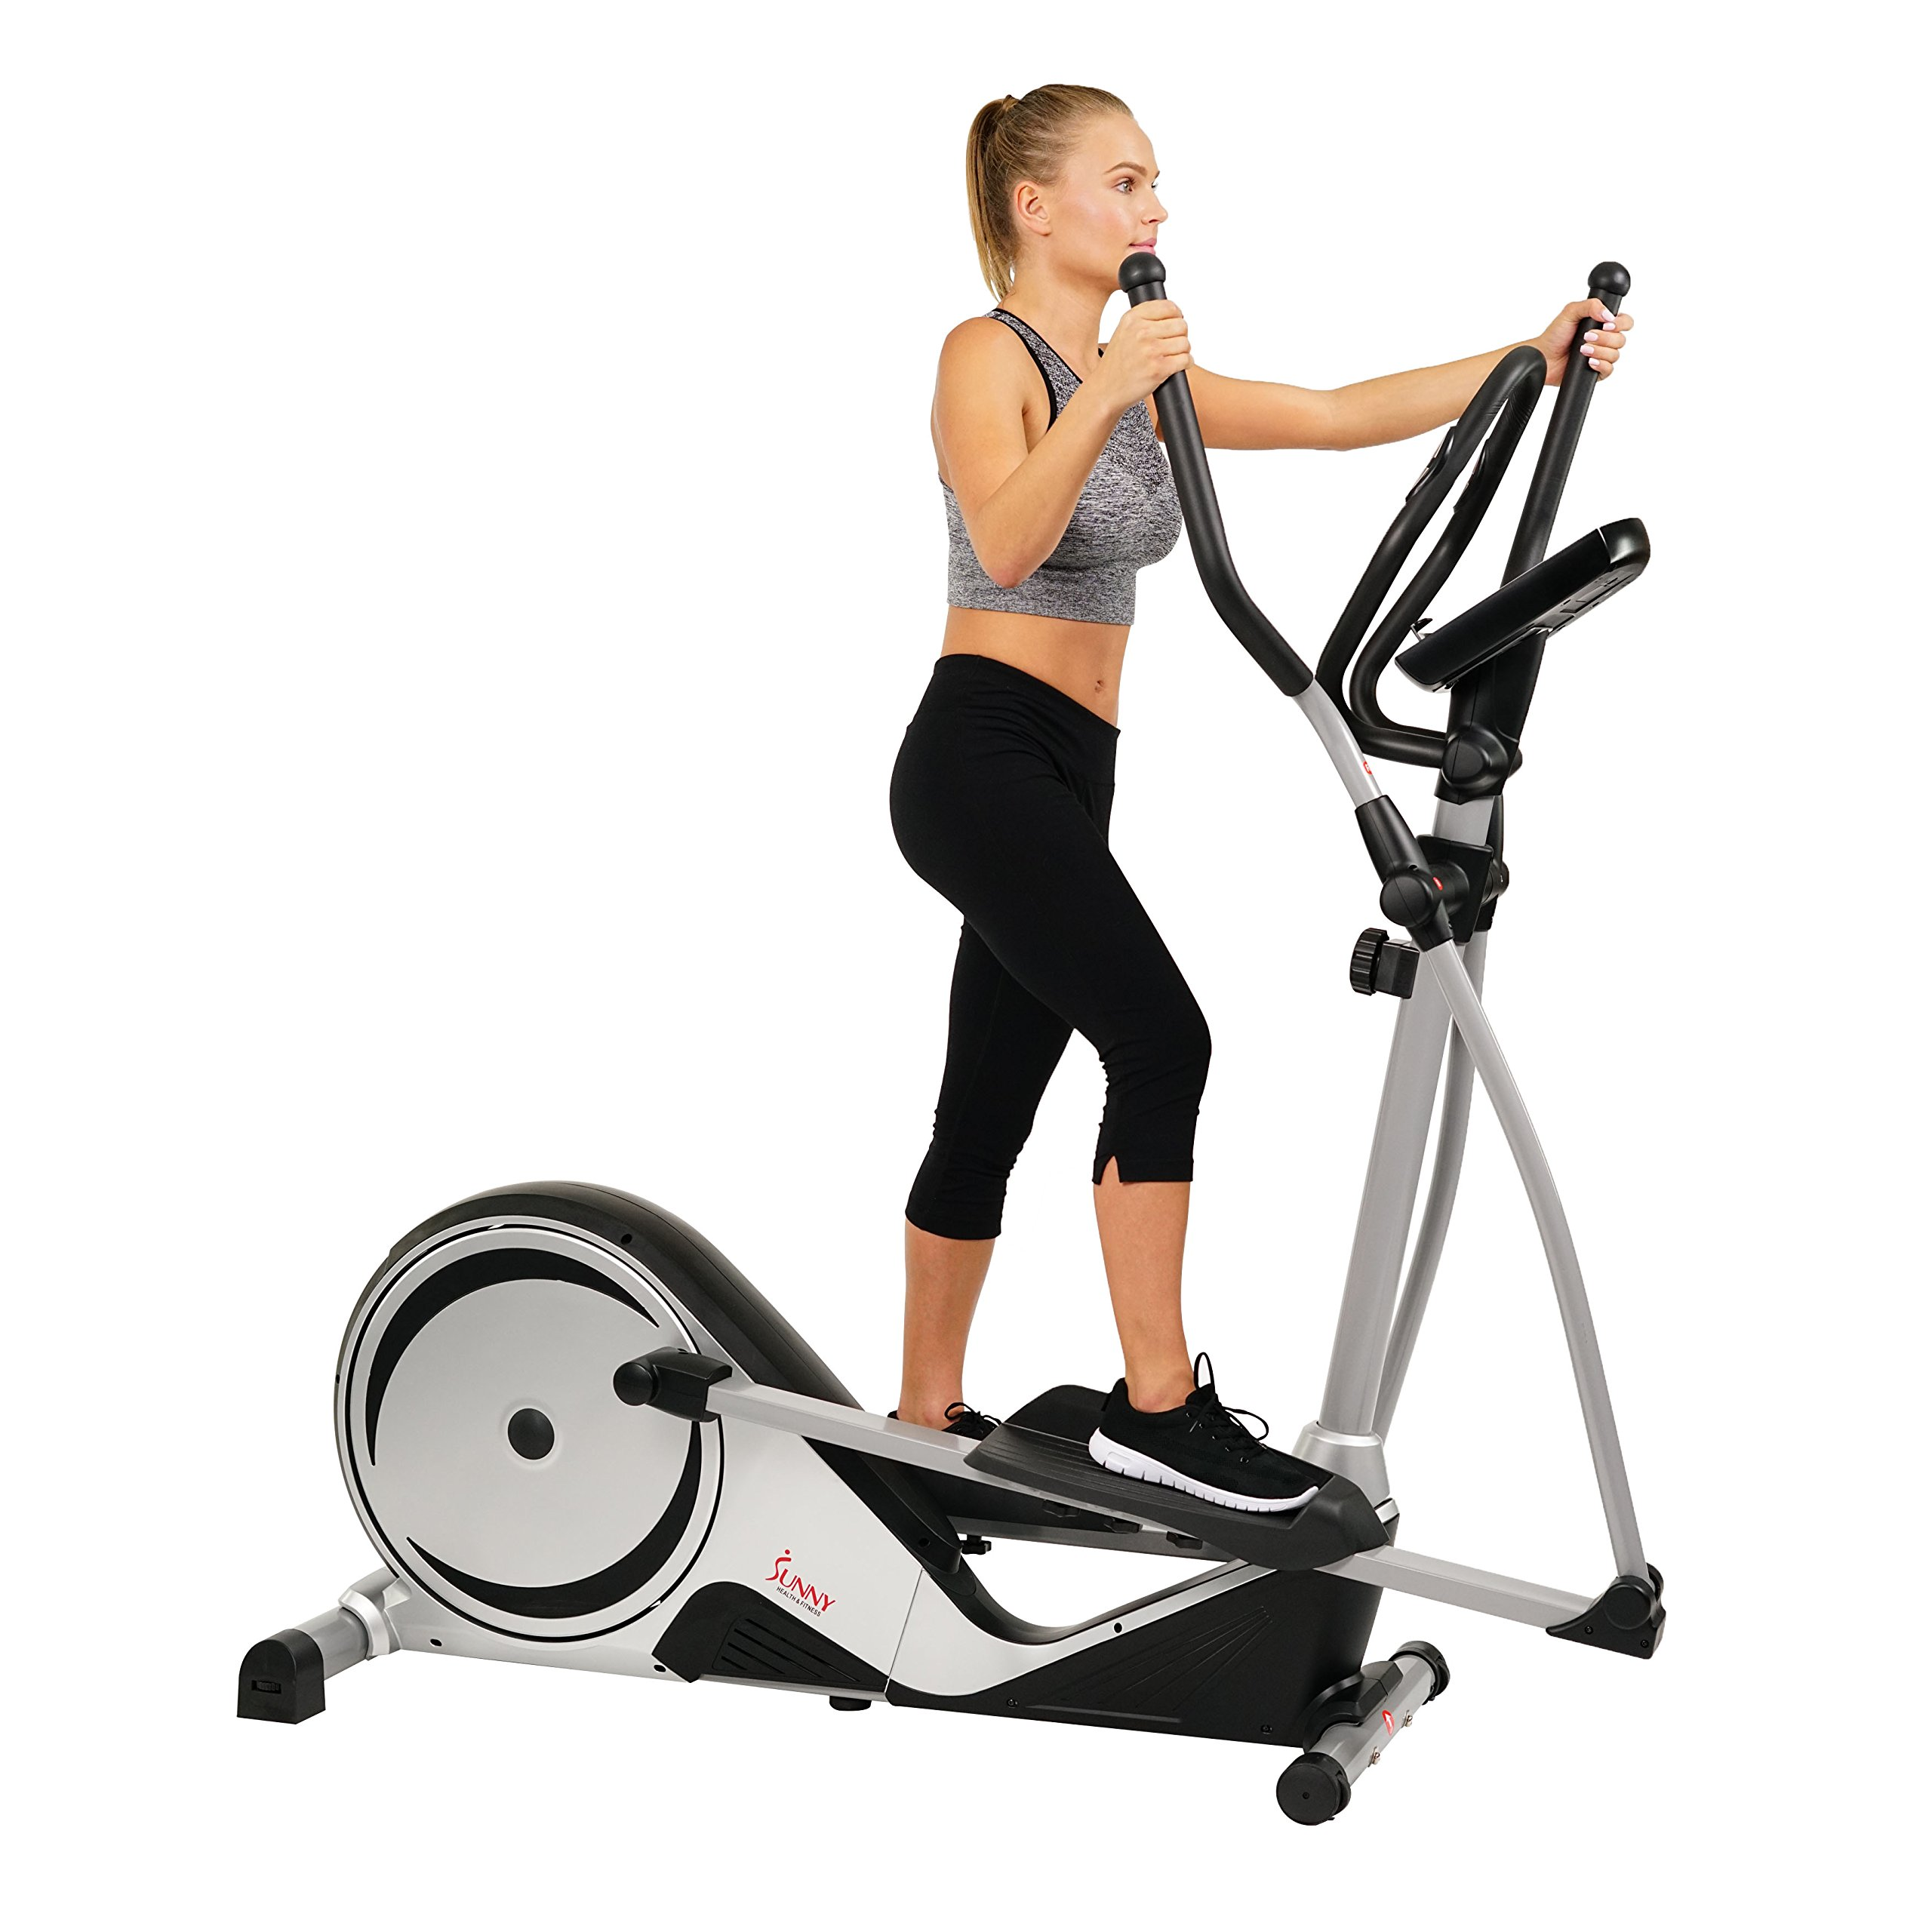 Sunny Health & Fitness Magnetic Elliptical Trainer Machine w/ LCD Monitor, Adjustable Stride, Heart Rate Monitor - SF-E3617 by Sunny Health & Fitness